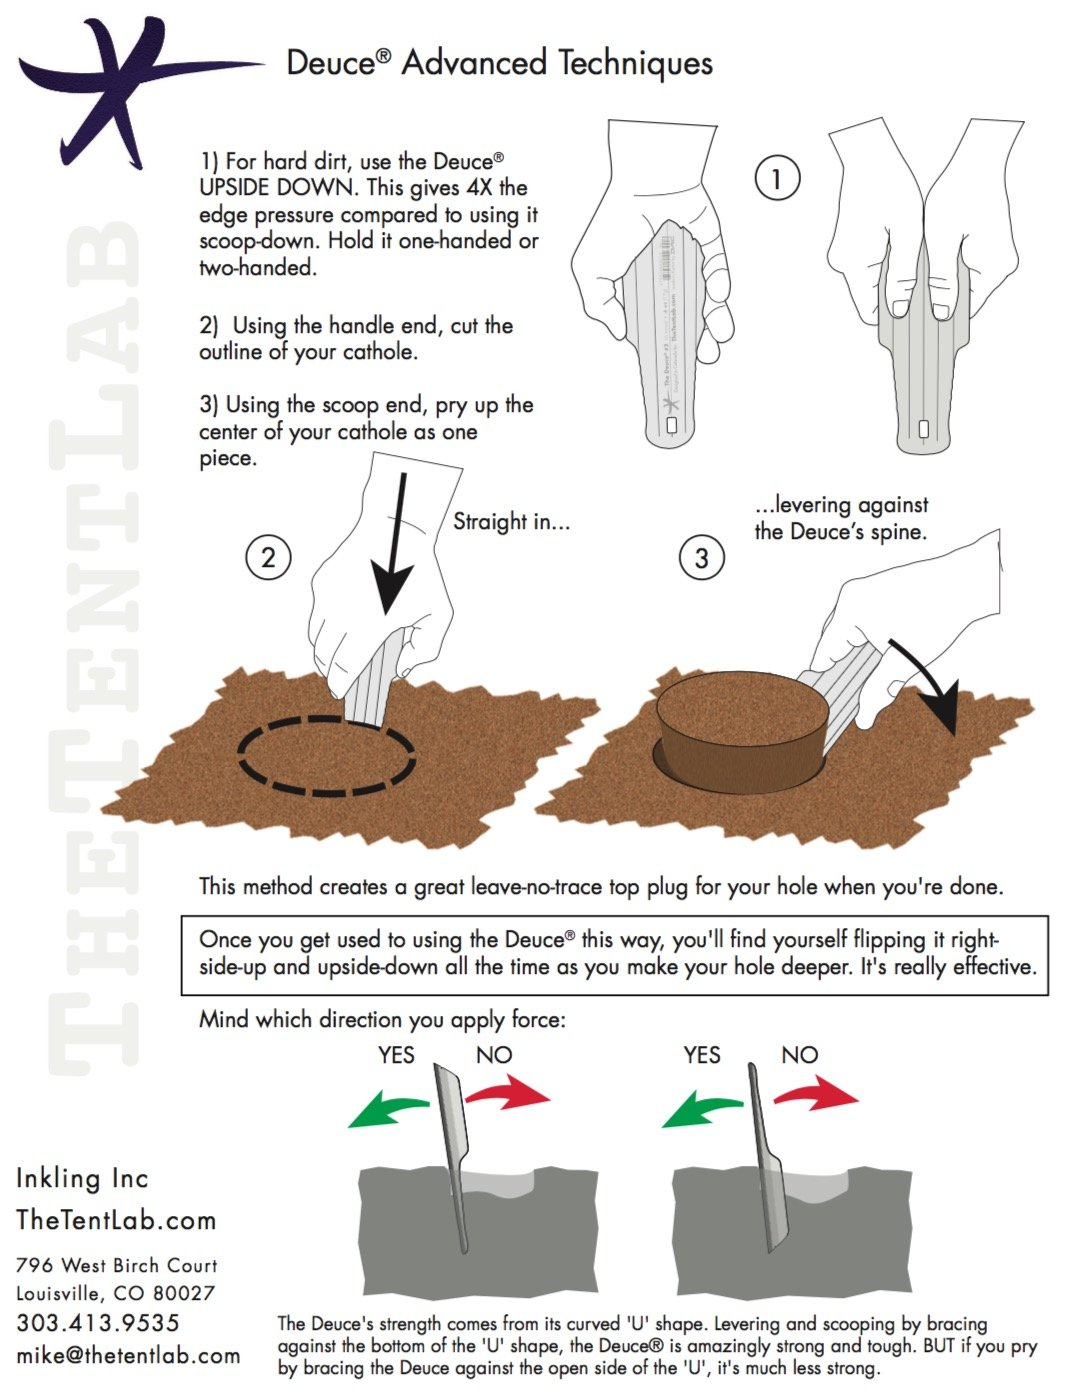 TheTentLab New Improved Deuce(R) Ultralight Backpacking Potty Trowel - Now in 3 Sizes by TheTentLab (Image #2)